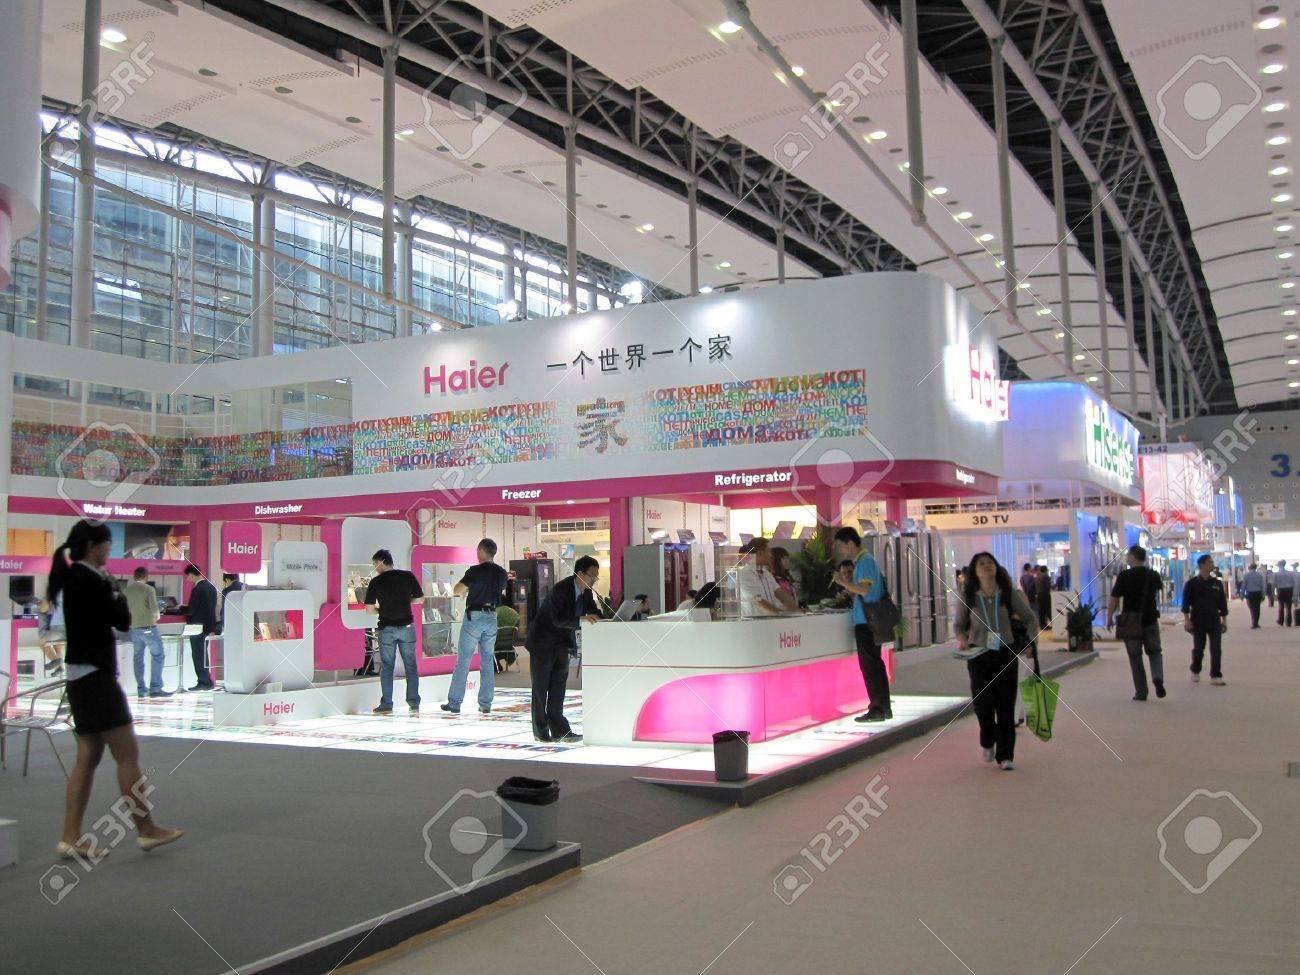 Guangzhou, China - October 18, 2010  : China Import and Export Fair 2010, the electrical appliances section             Stock Photo - 8150046